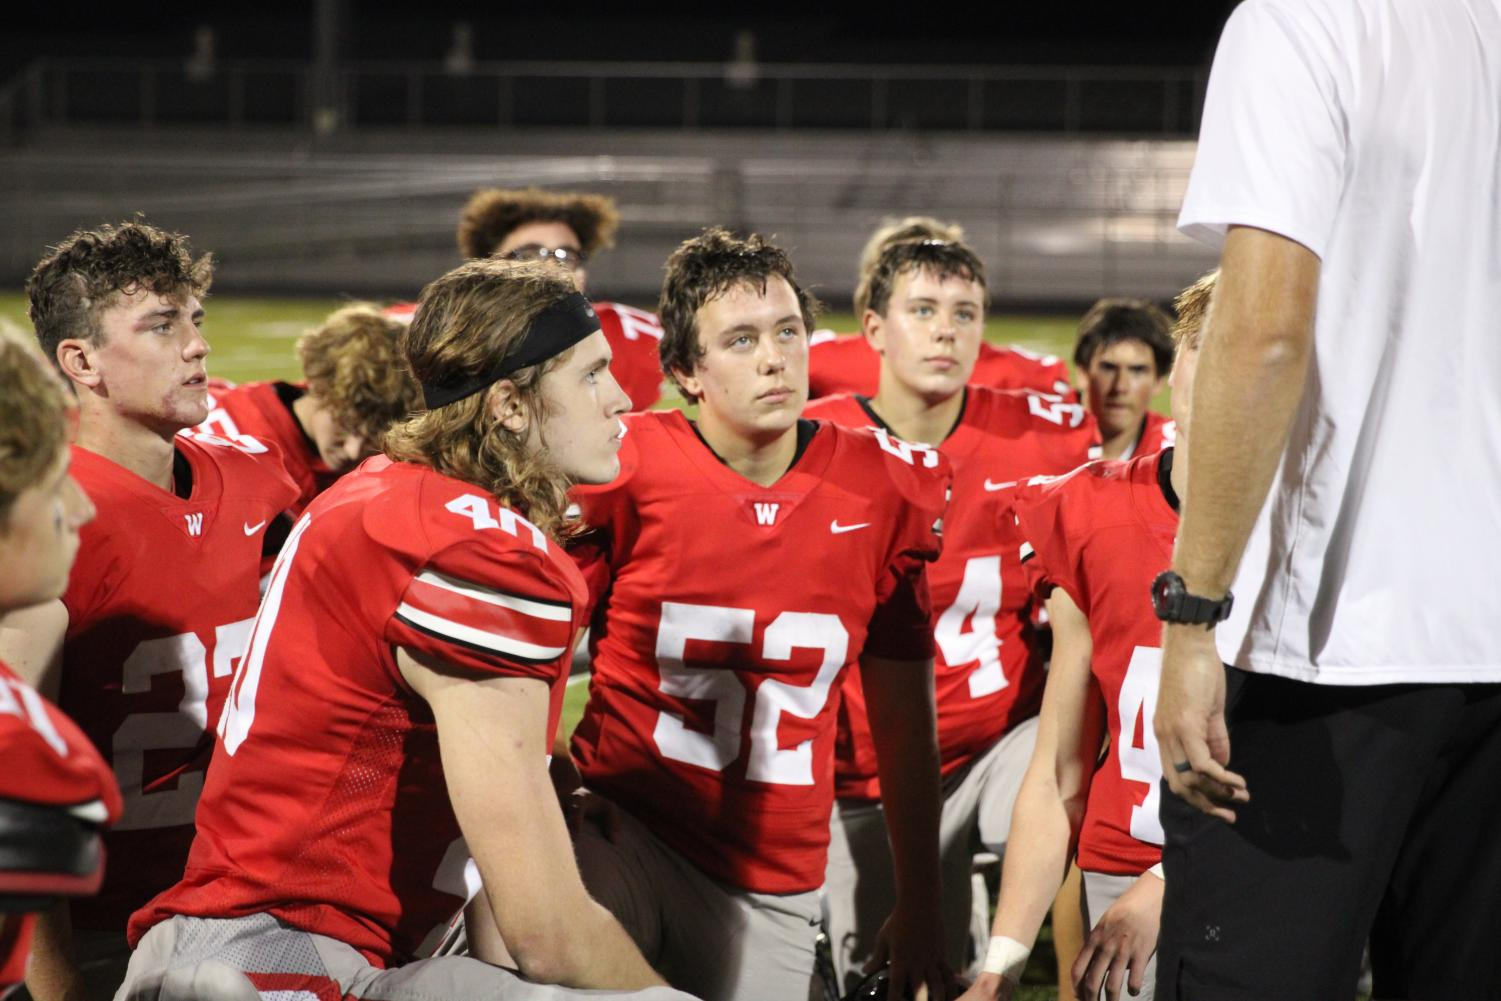 Jv football boys getting a talk after the big game.